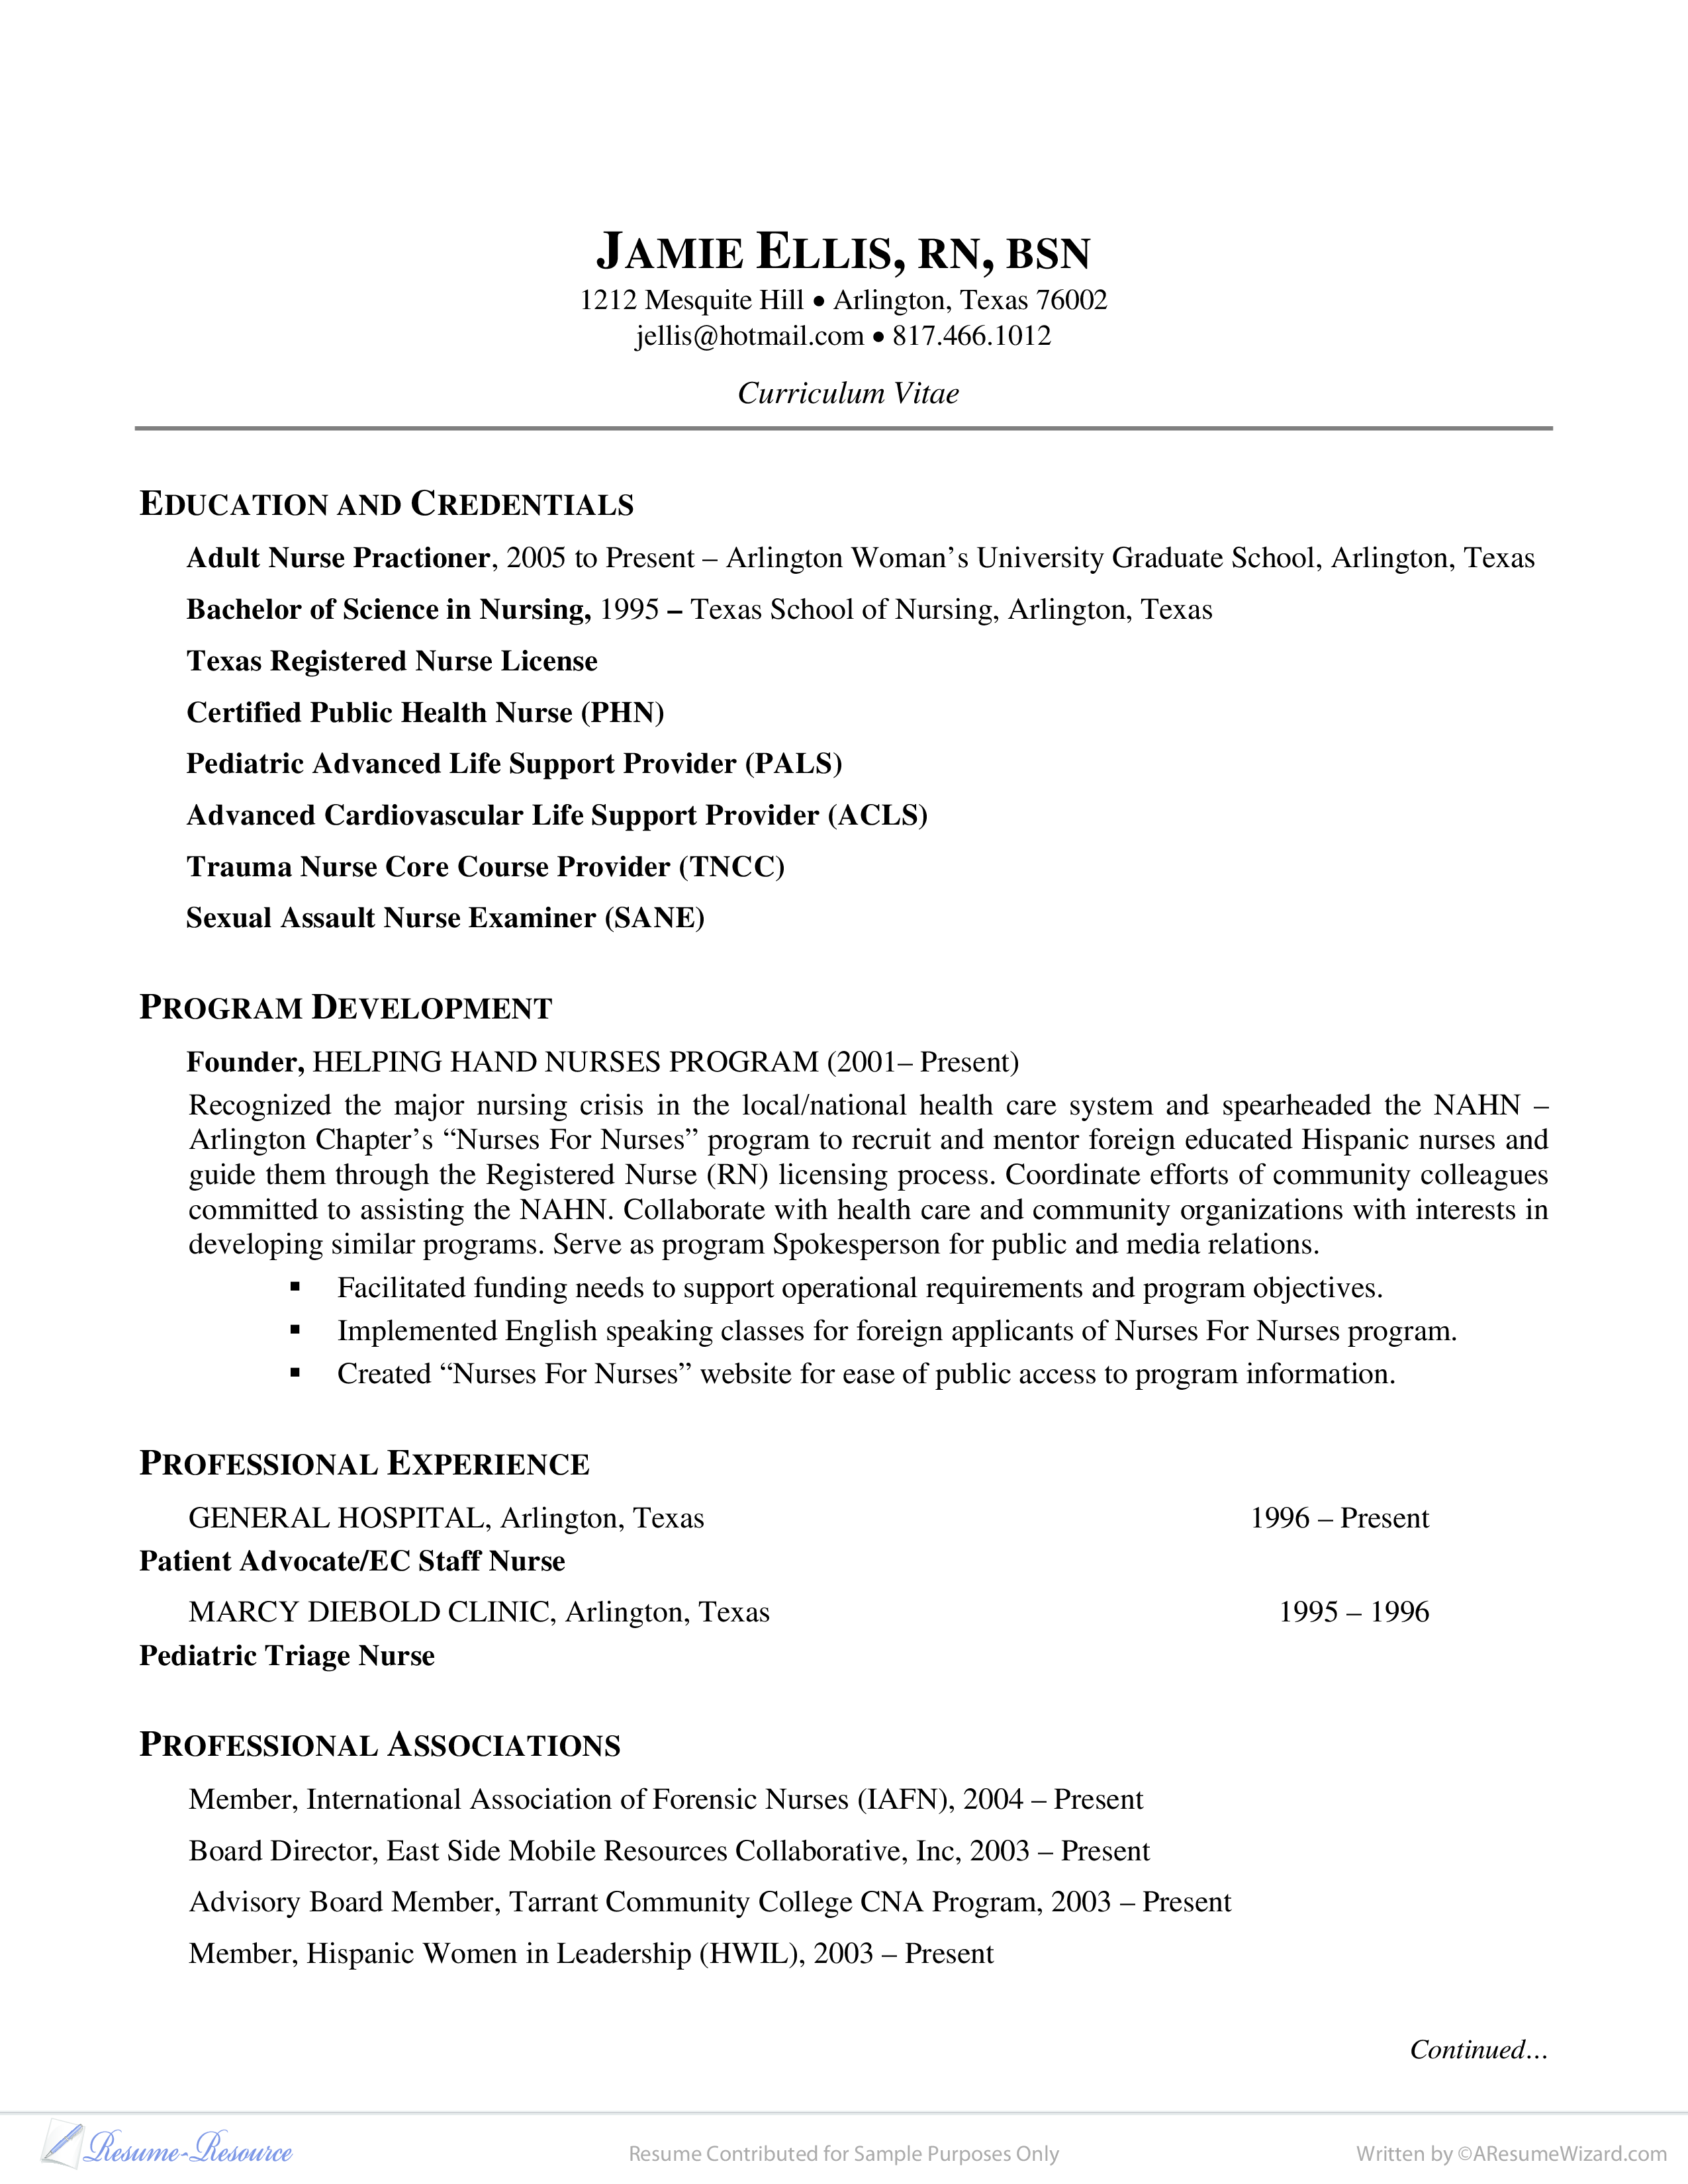 Hospital Nurse Resume - How To Create A Hospital Nurse Resume